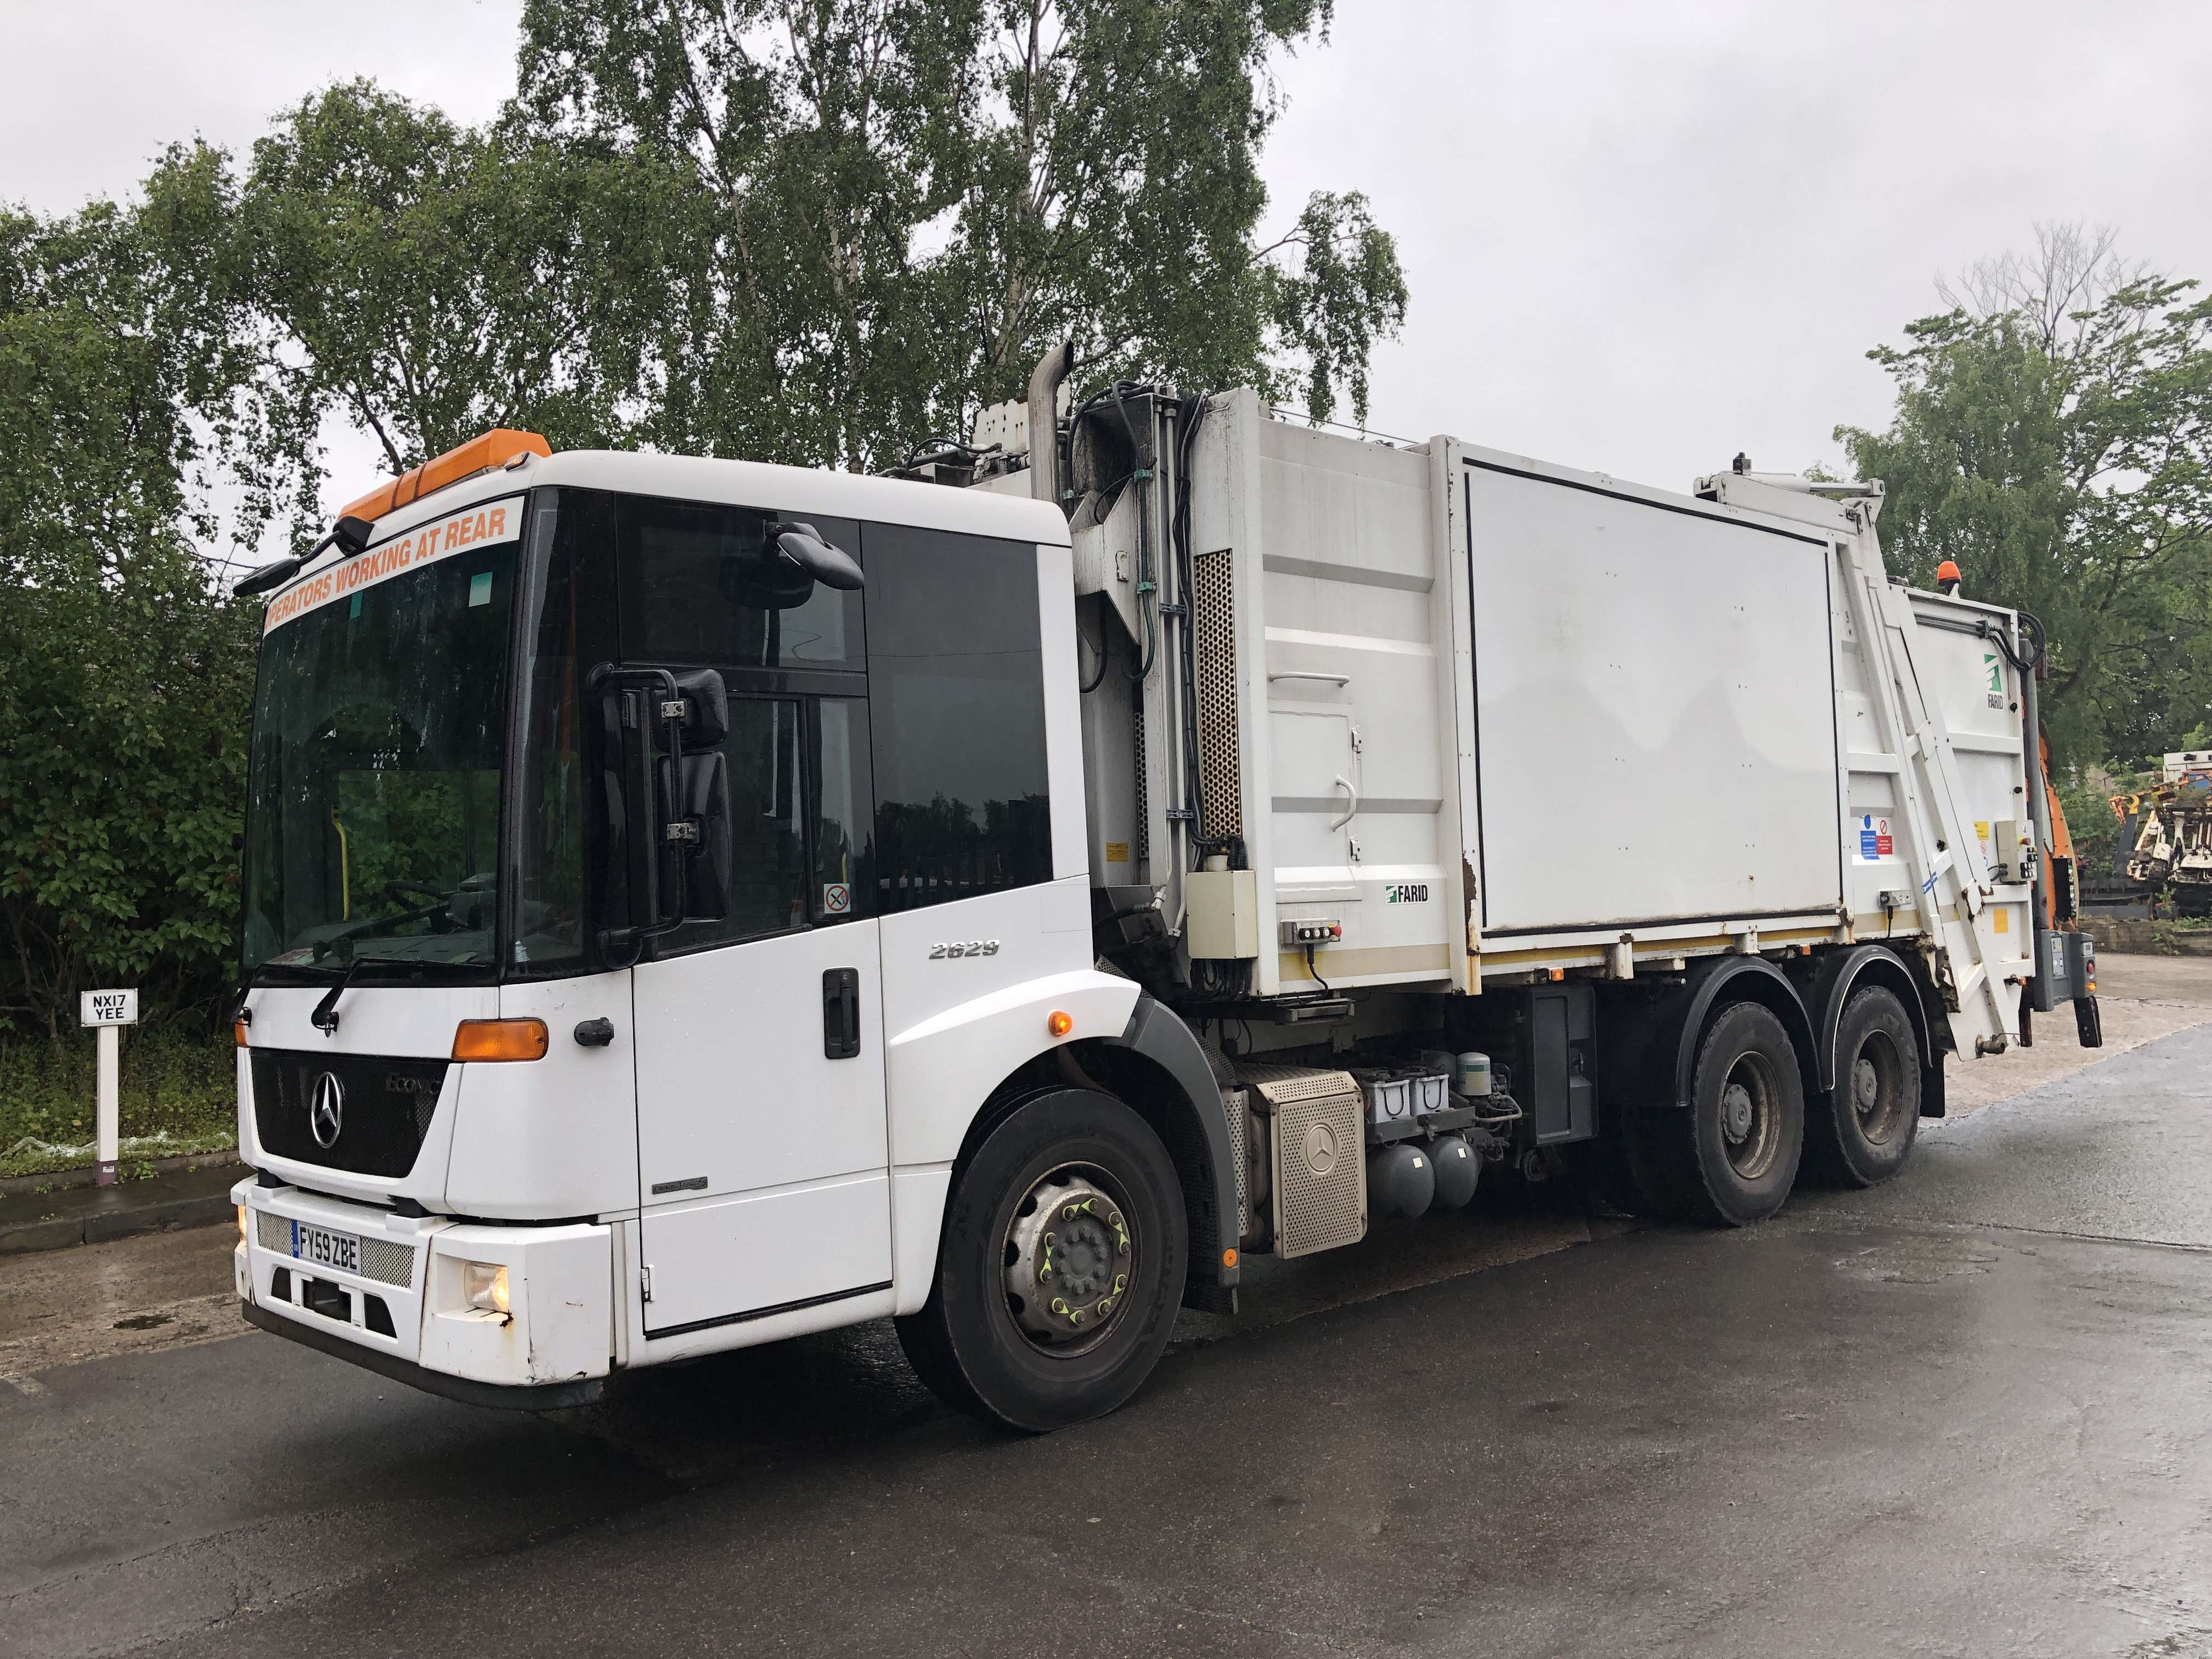 Mercedes Econic 70/30 split body twinpack refuse truck for sale